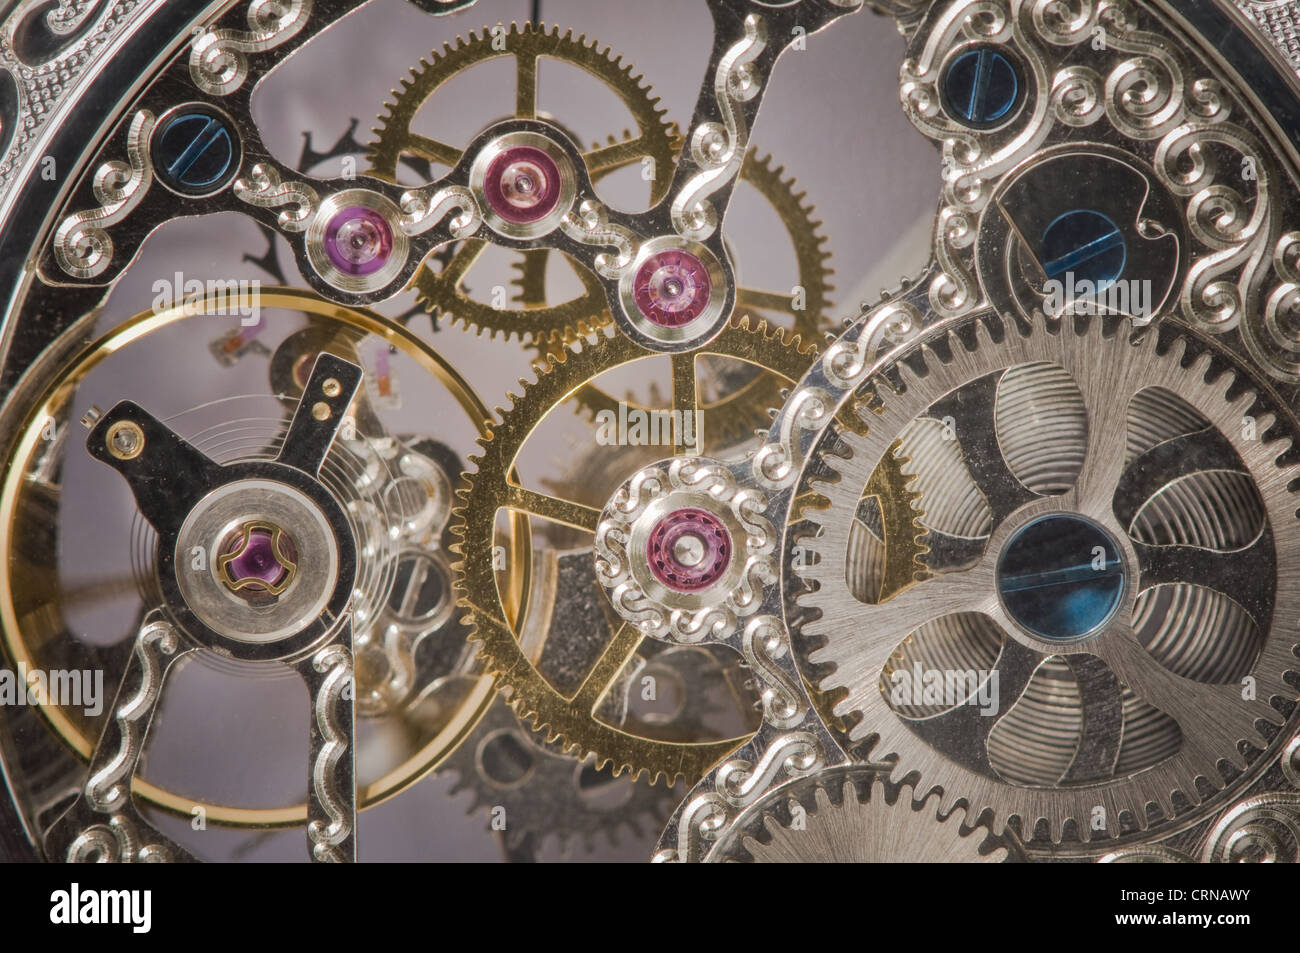 close view of watch mechanism - Stock Image